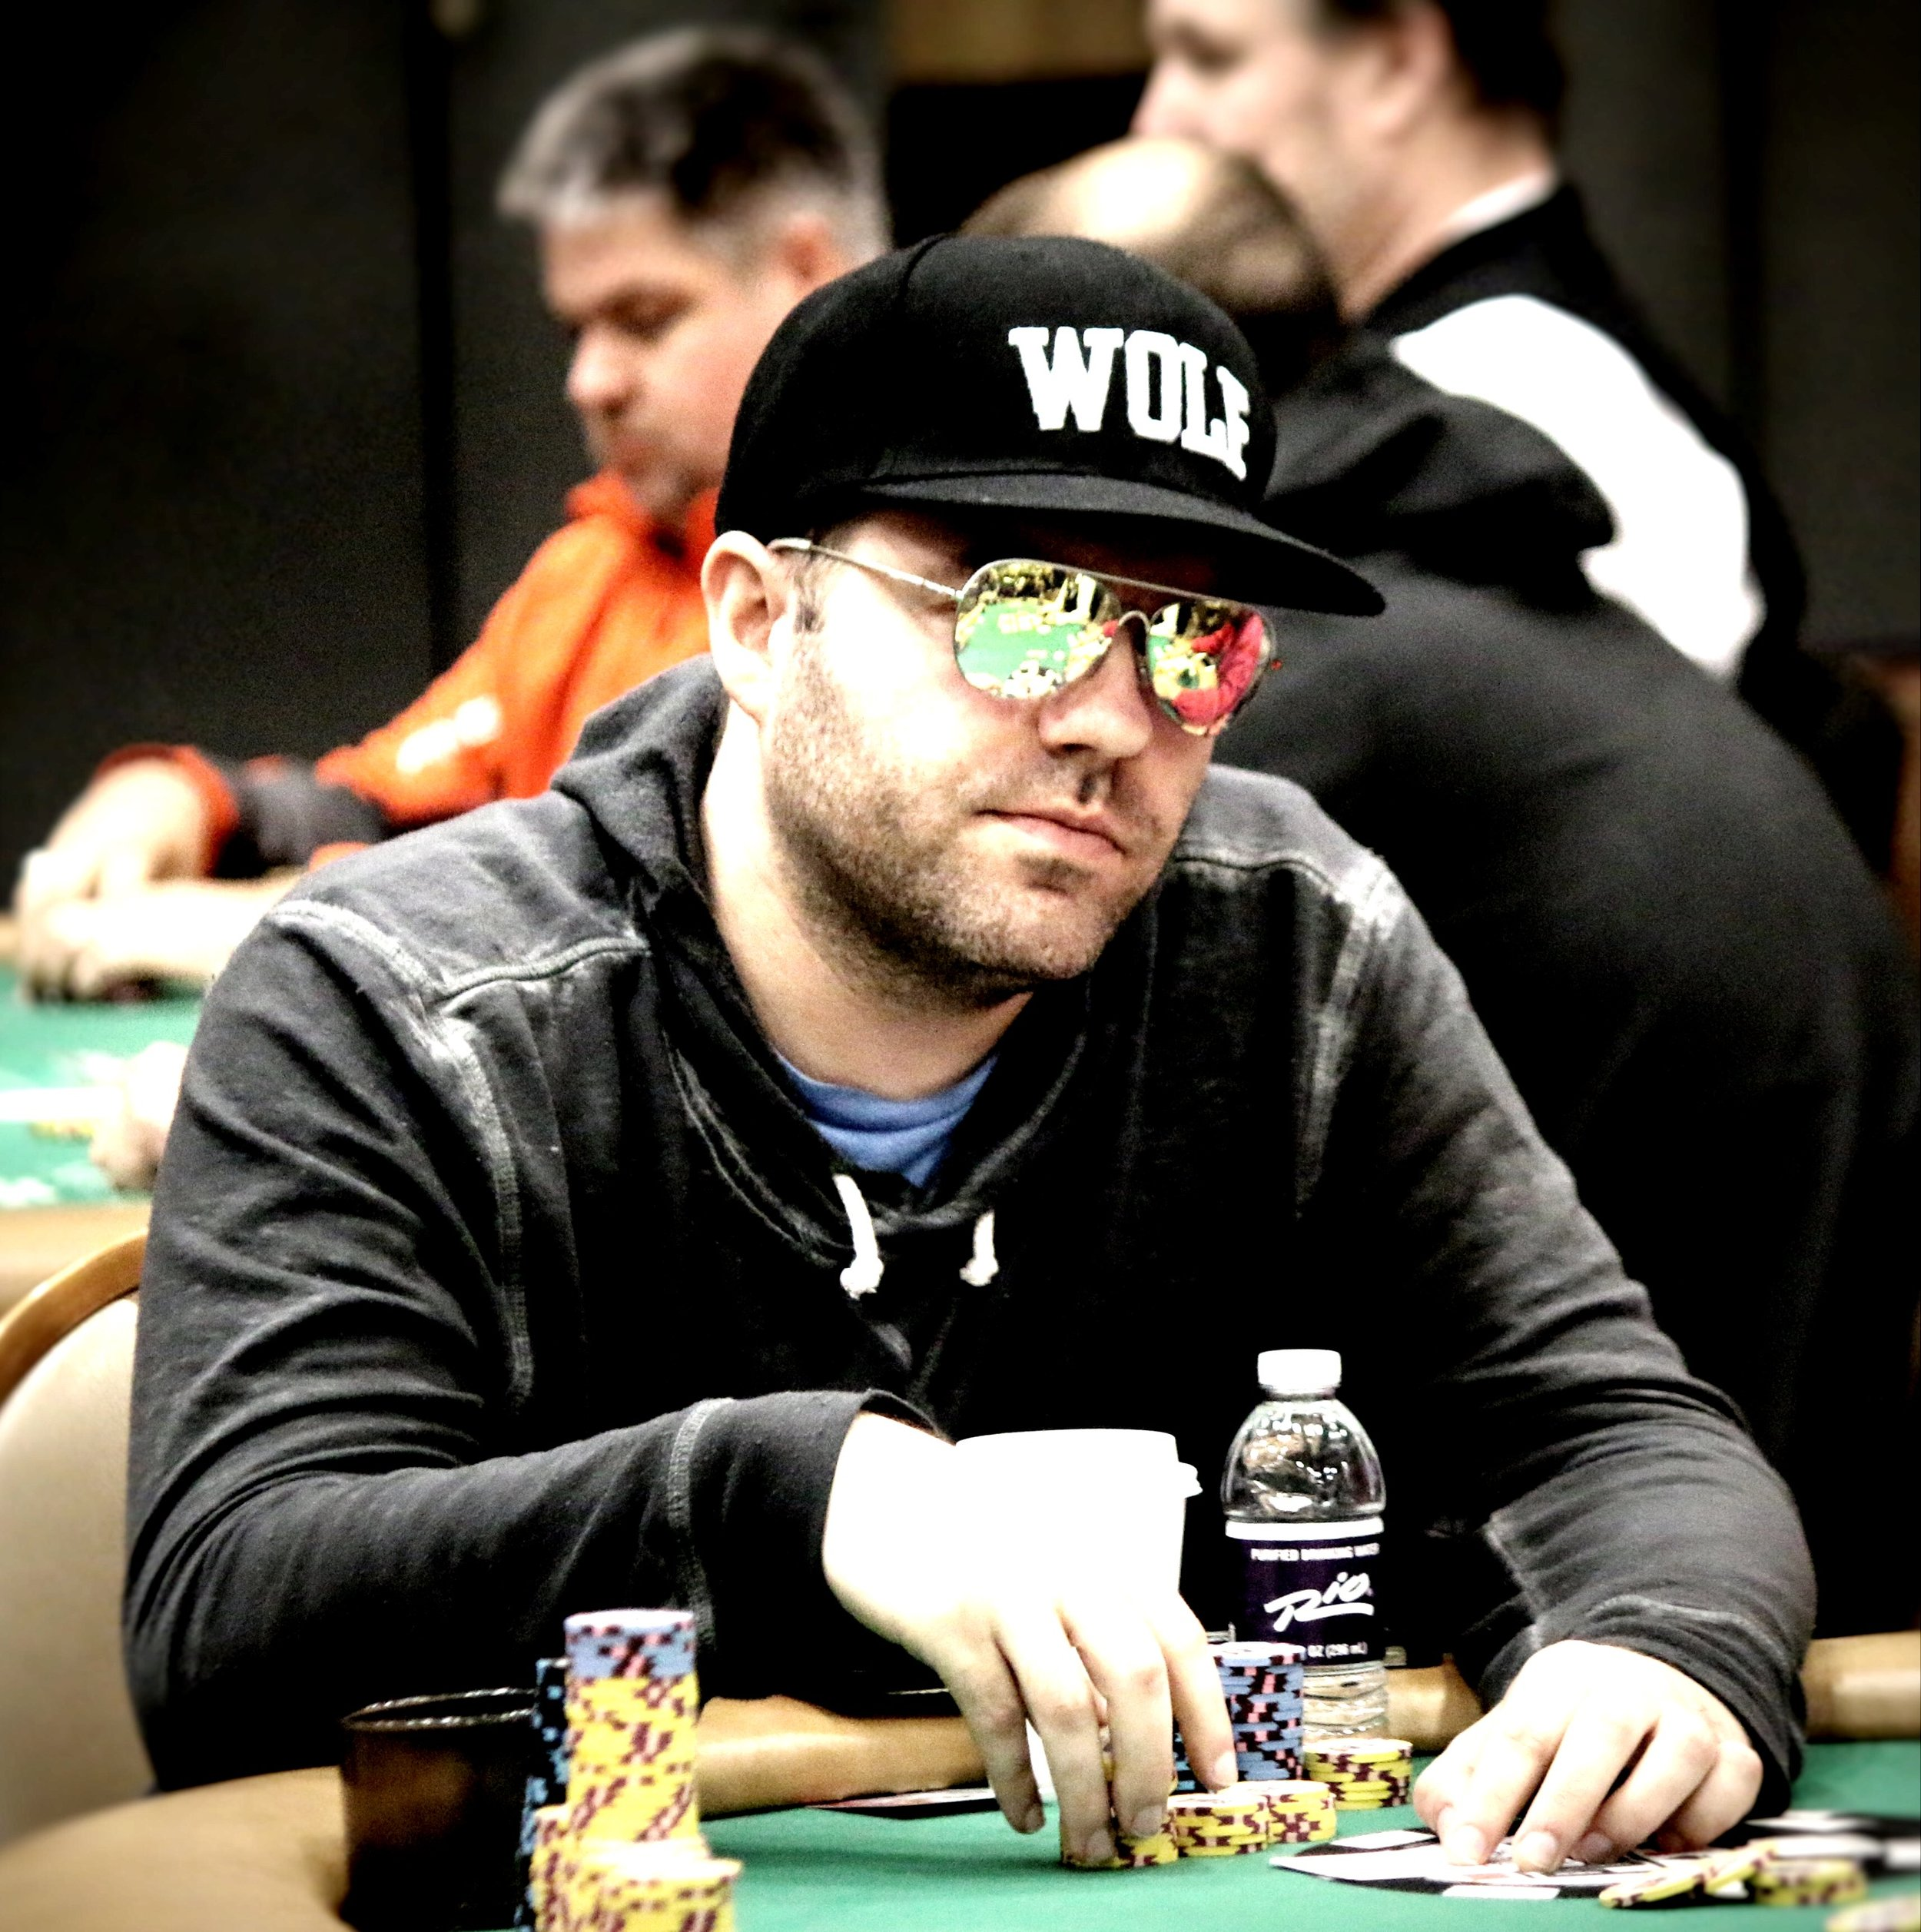 We are excited to announce that poker pro and 3x bracelet winner Dutch Boyd will be joining us at our inaugural event at Majestic Star Casino!